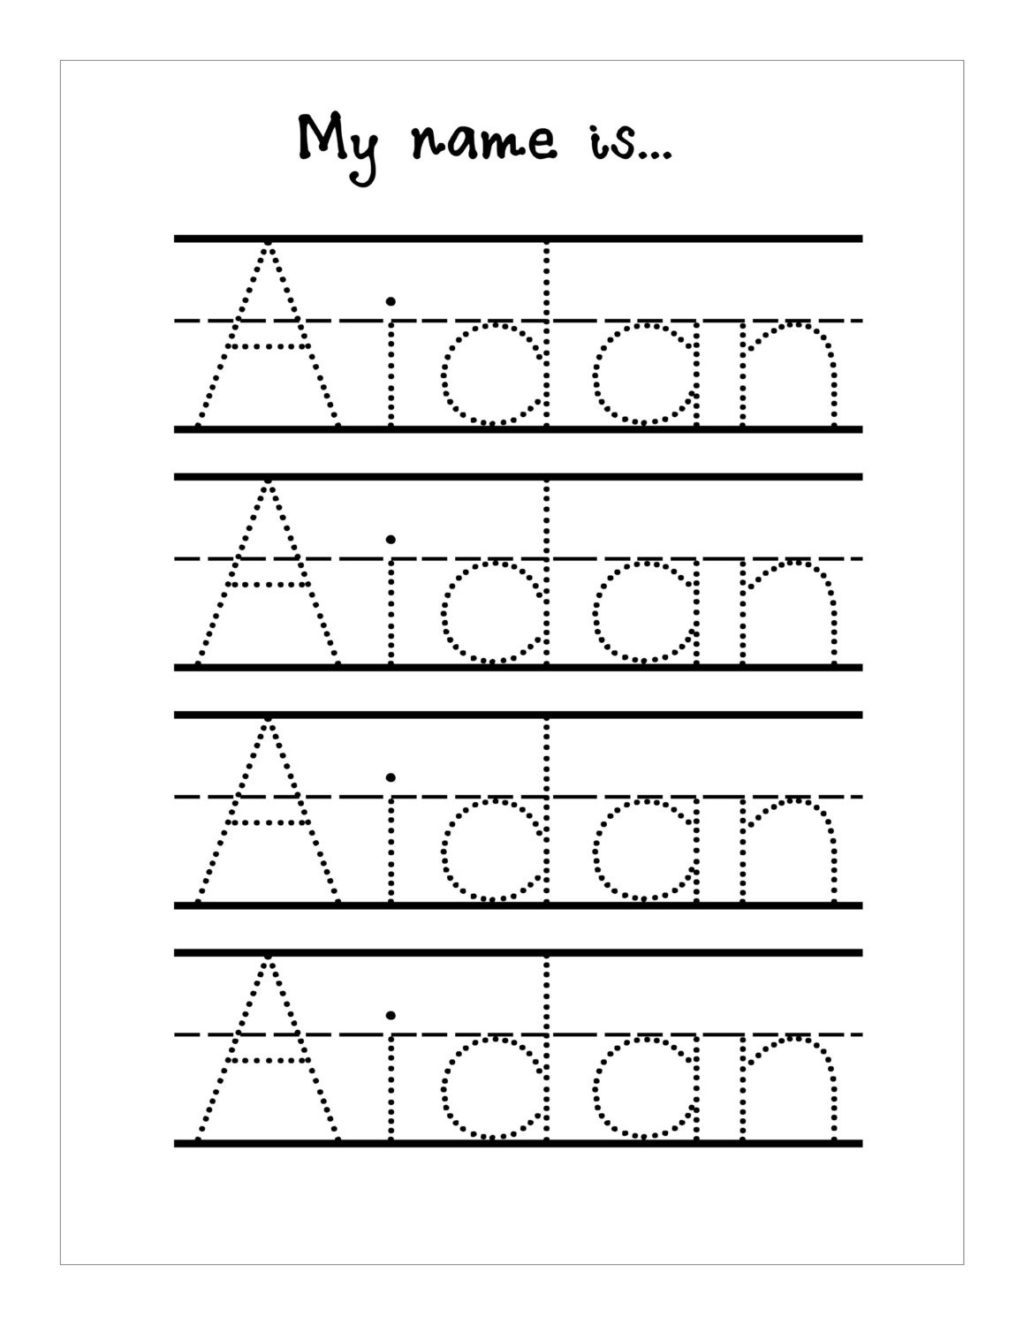 Worksheet ~ Trace Name Worksheets Custom Tracing Sheets within Free Name Tracing Handwriting Worksheets